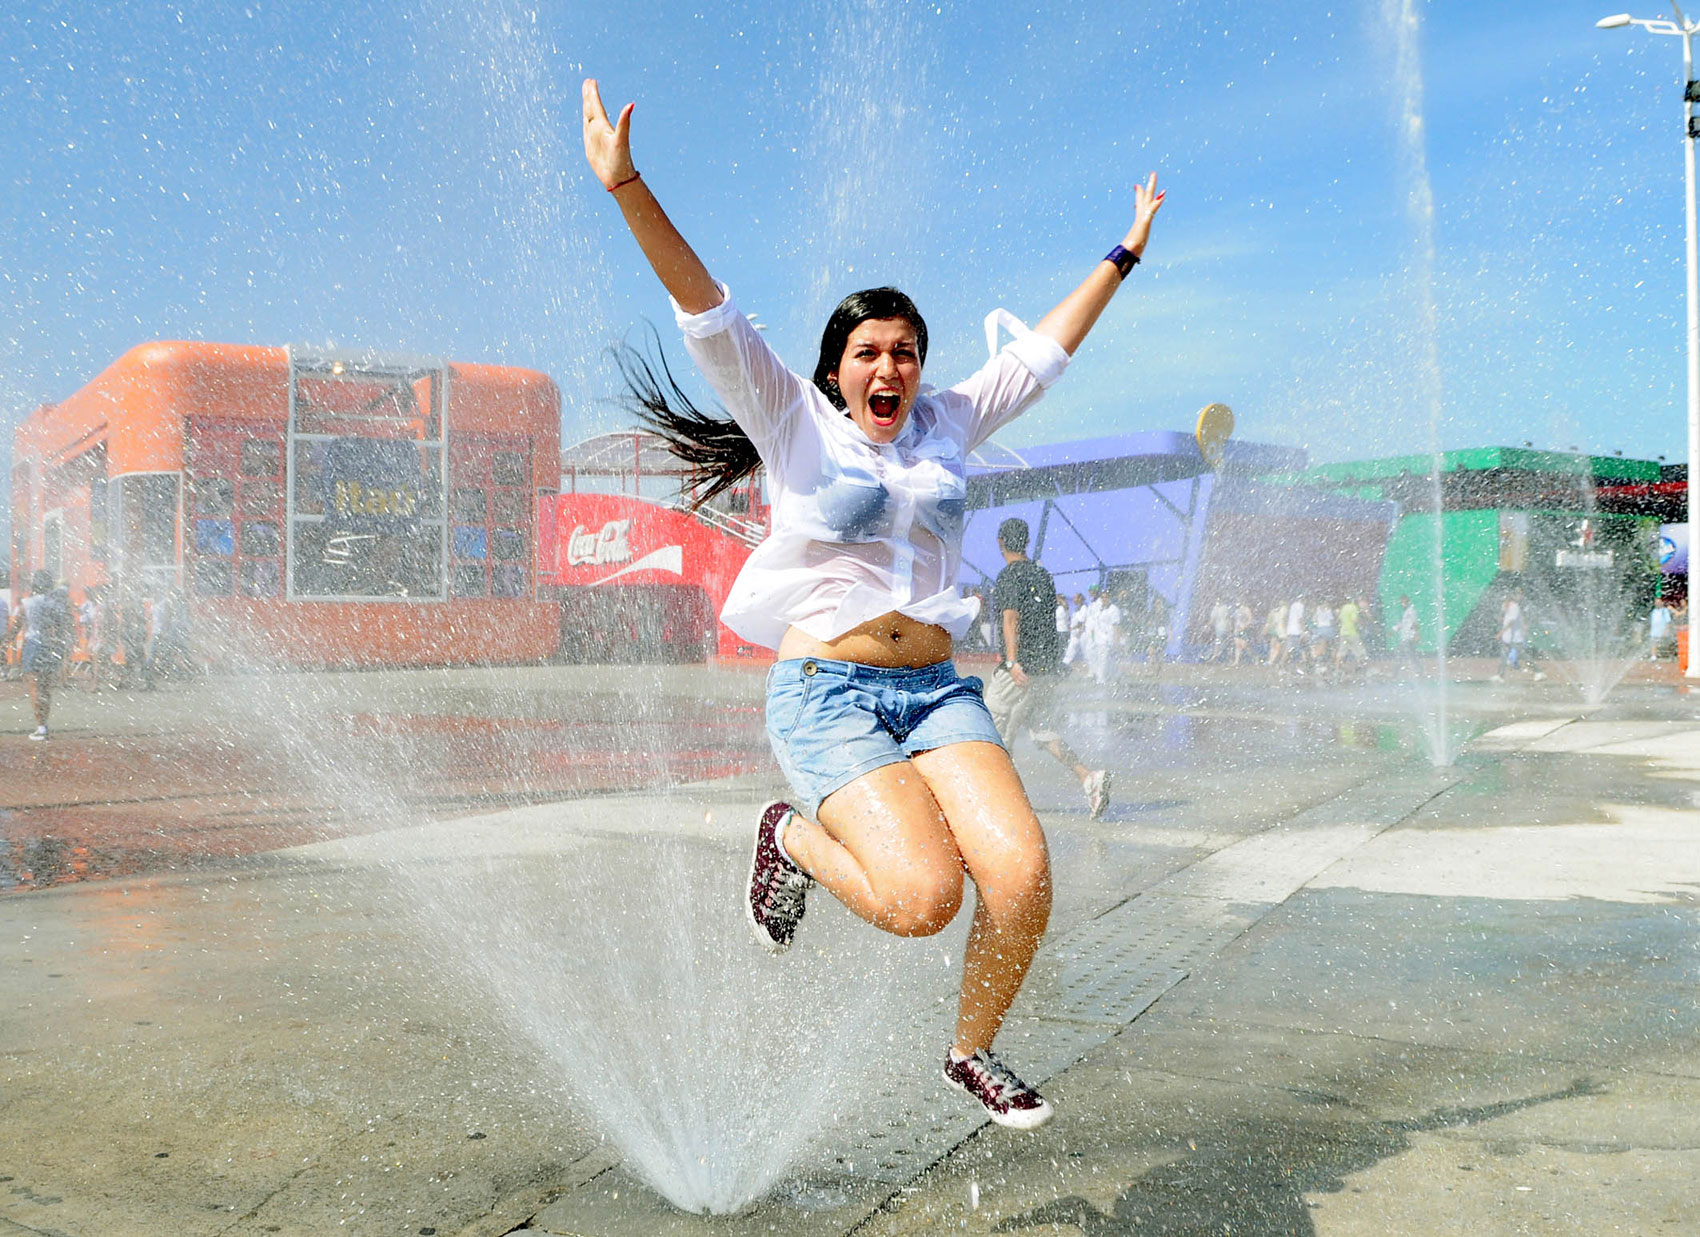 Jovem se refresca no chafariz do Rock in Rio no 6º dia de shows do festival